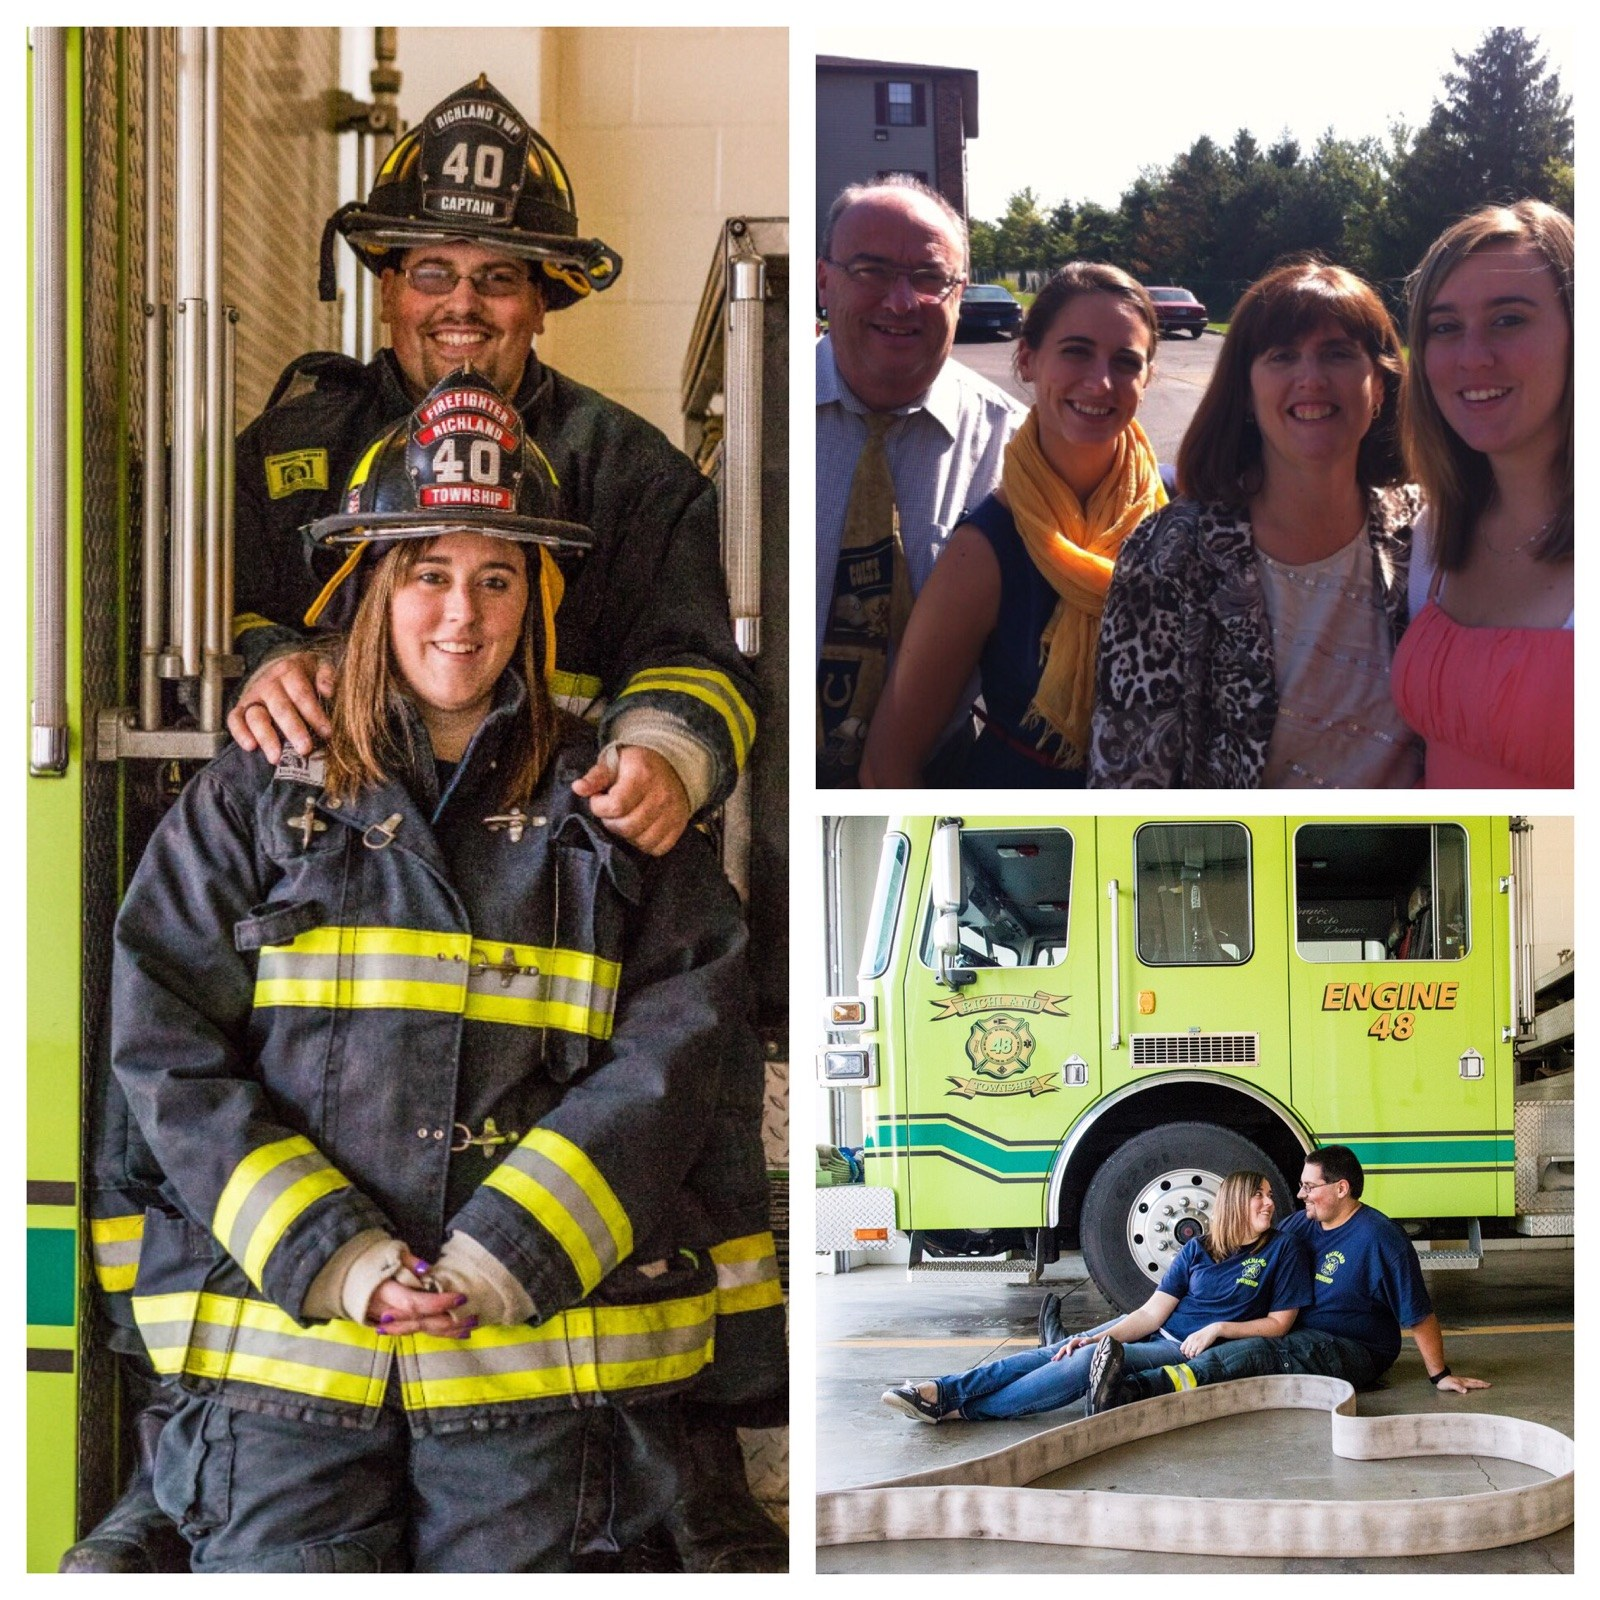 Me and tyler with firetruck, me and tyler, and me and my family